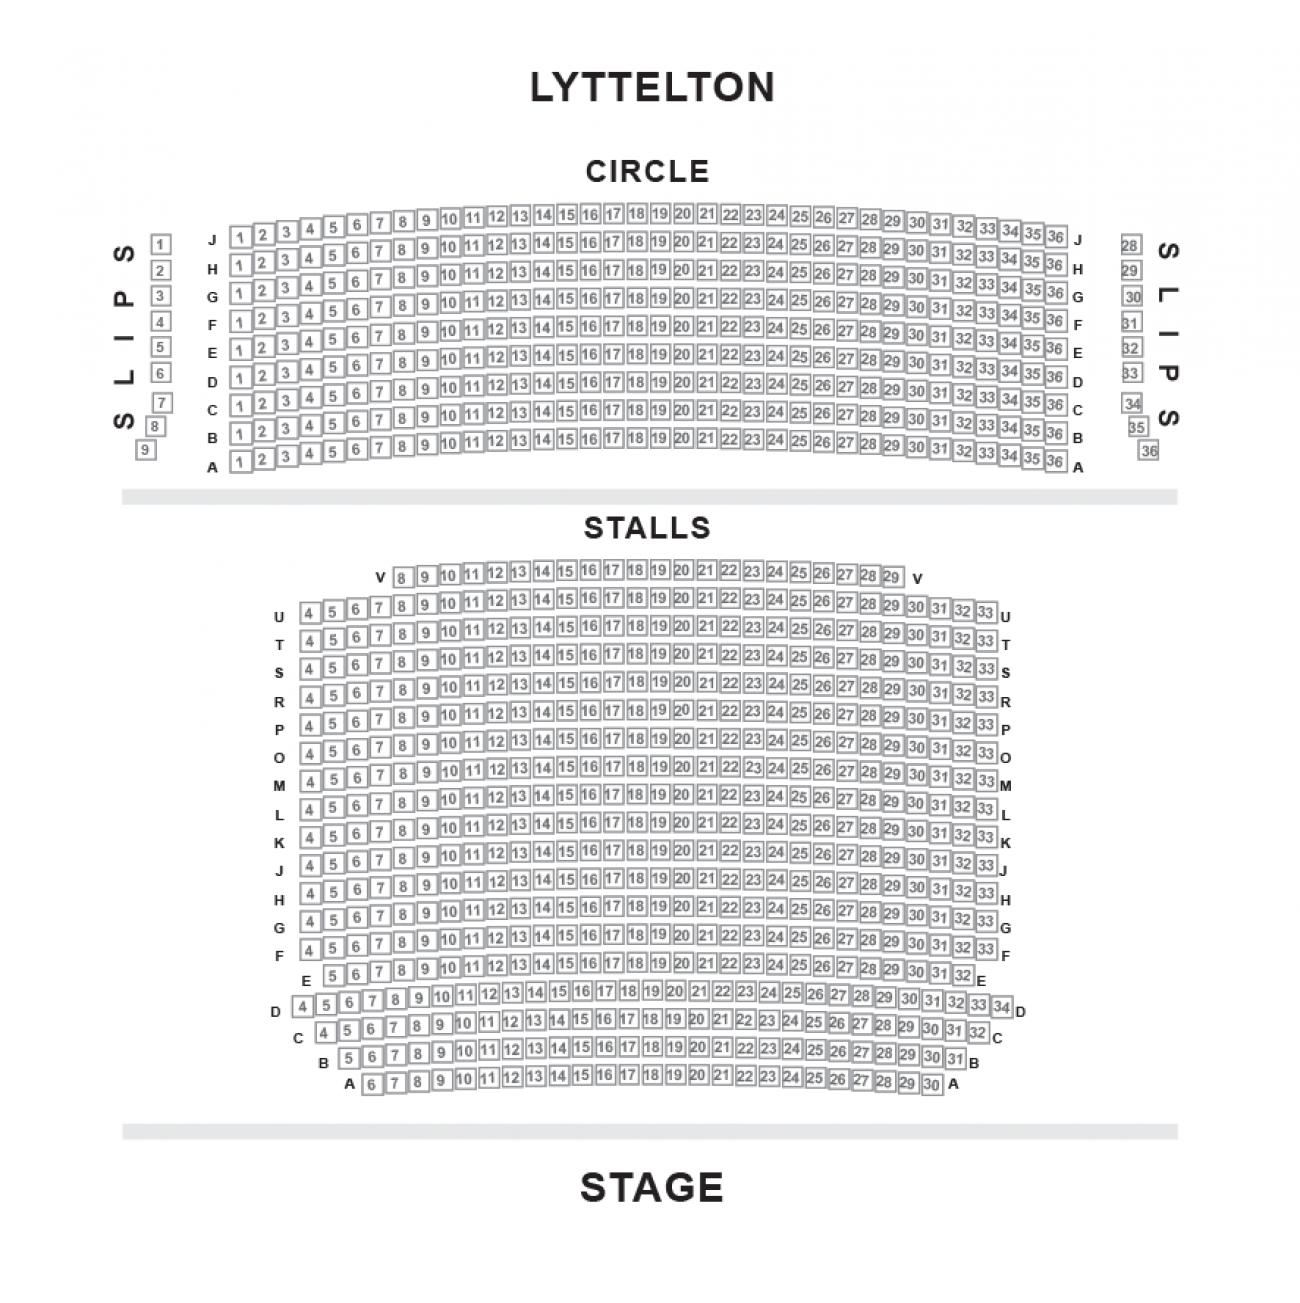 Lyttelton - National Theatre Seating plan